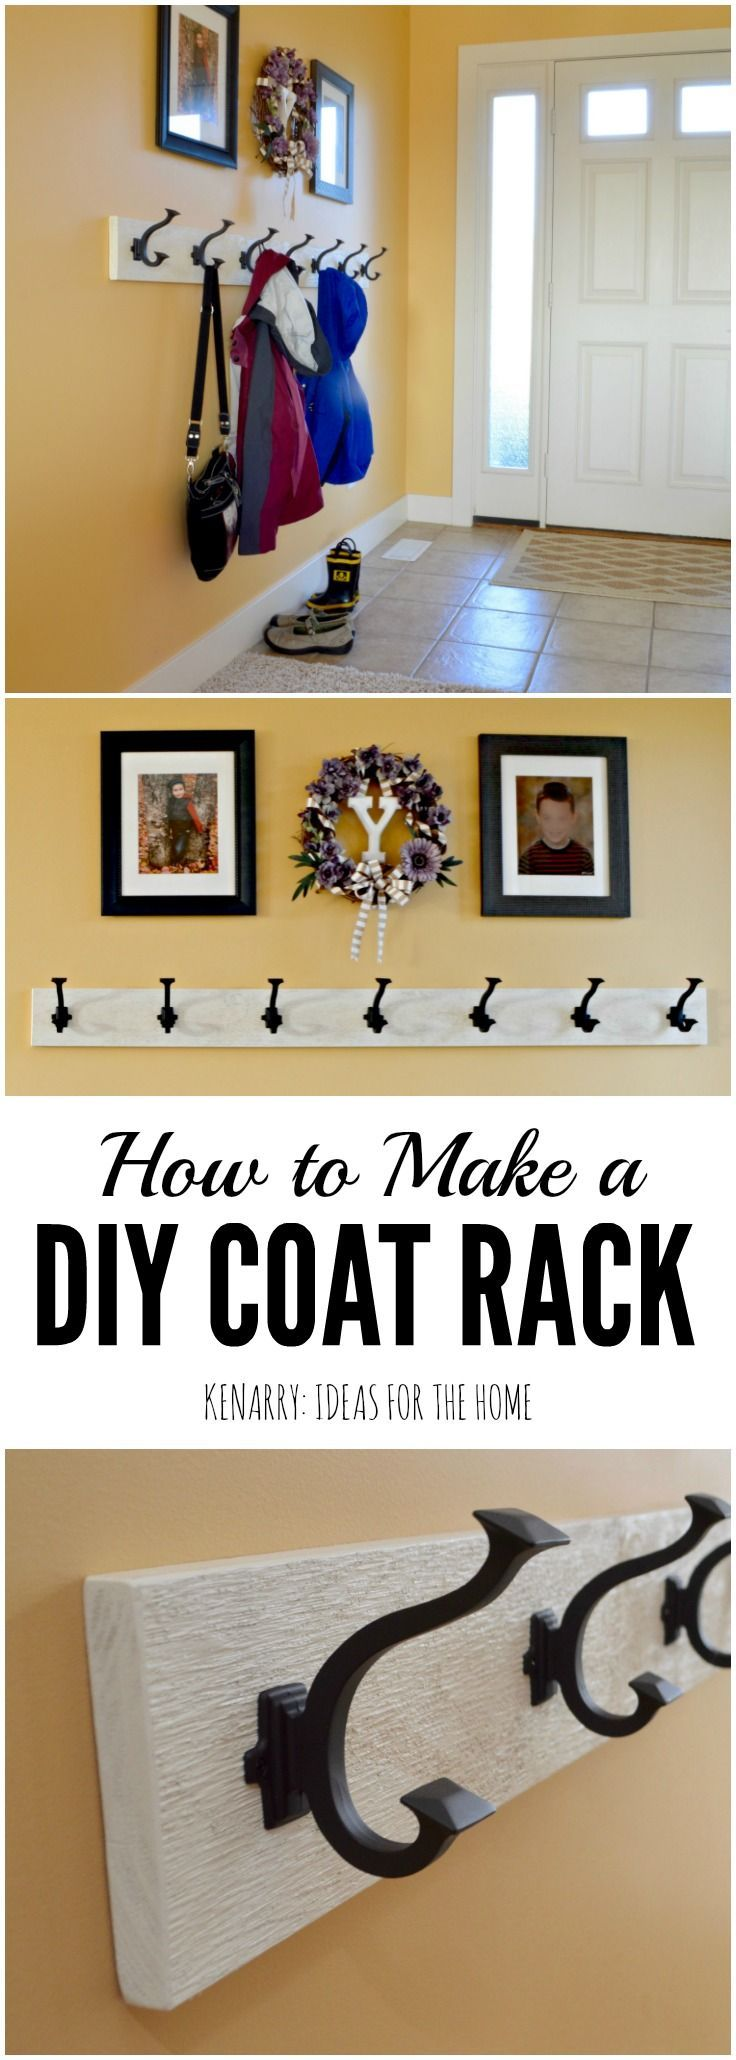 Top 25+ best Diy coat rack ideas on Pinterest | Diy coat hooks ...